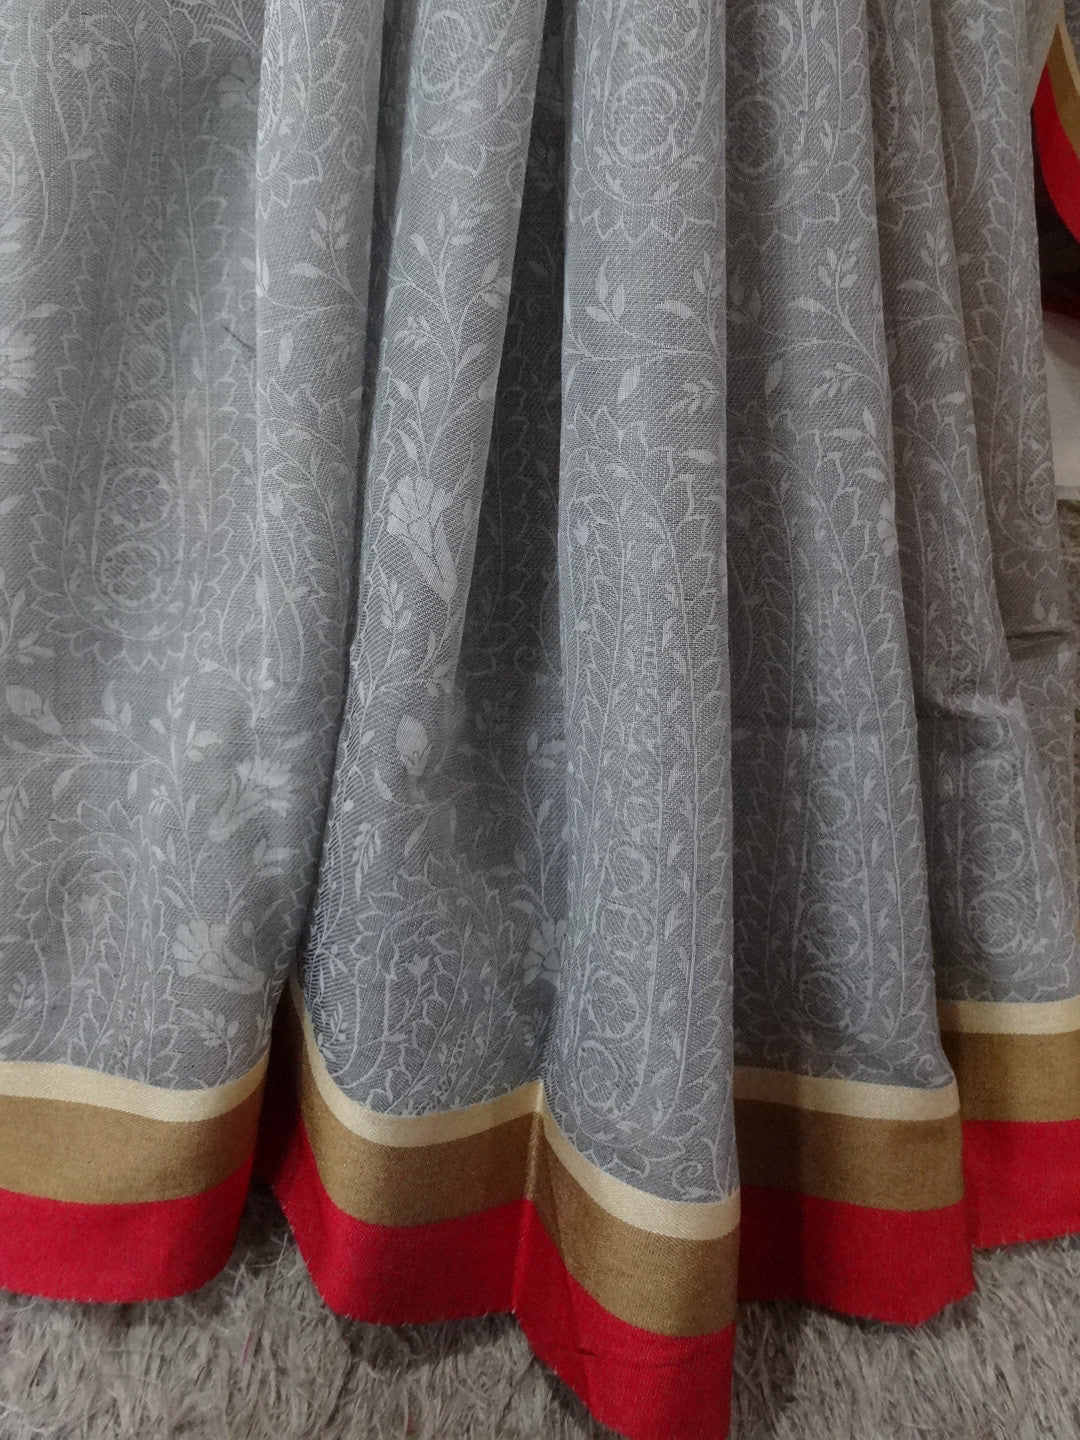 Banarasee/Banarasee Soft Cotton Saree With Self Weaving Design & Contrast Border-Grey